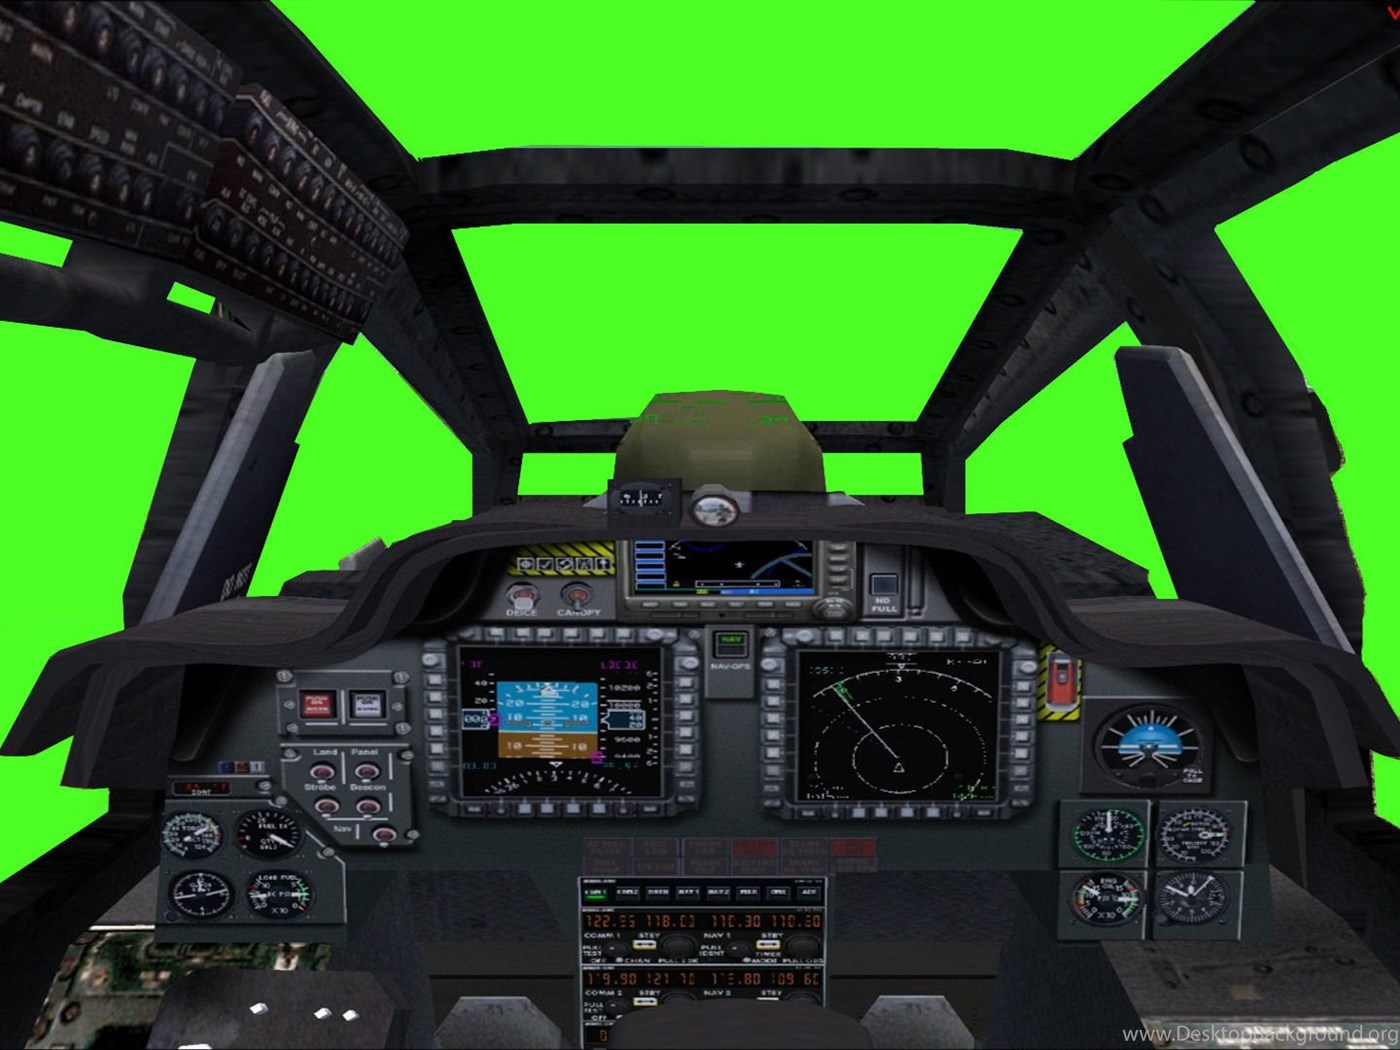 Ziotech video productions chroma key green screen for Green screen backgrounds free templates